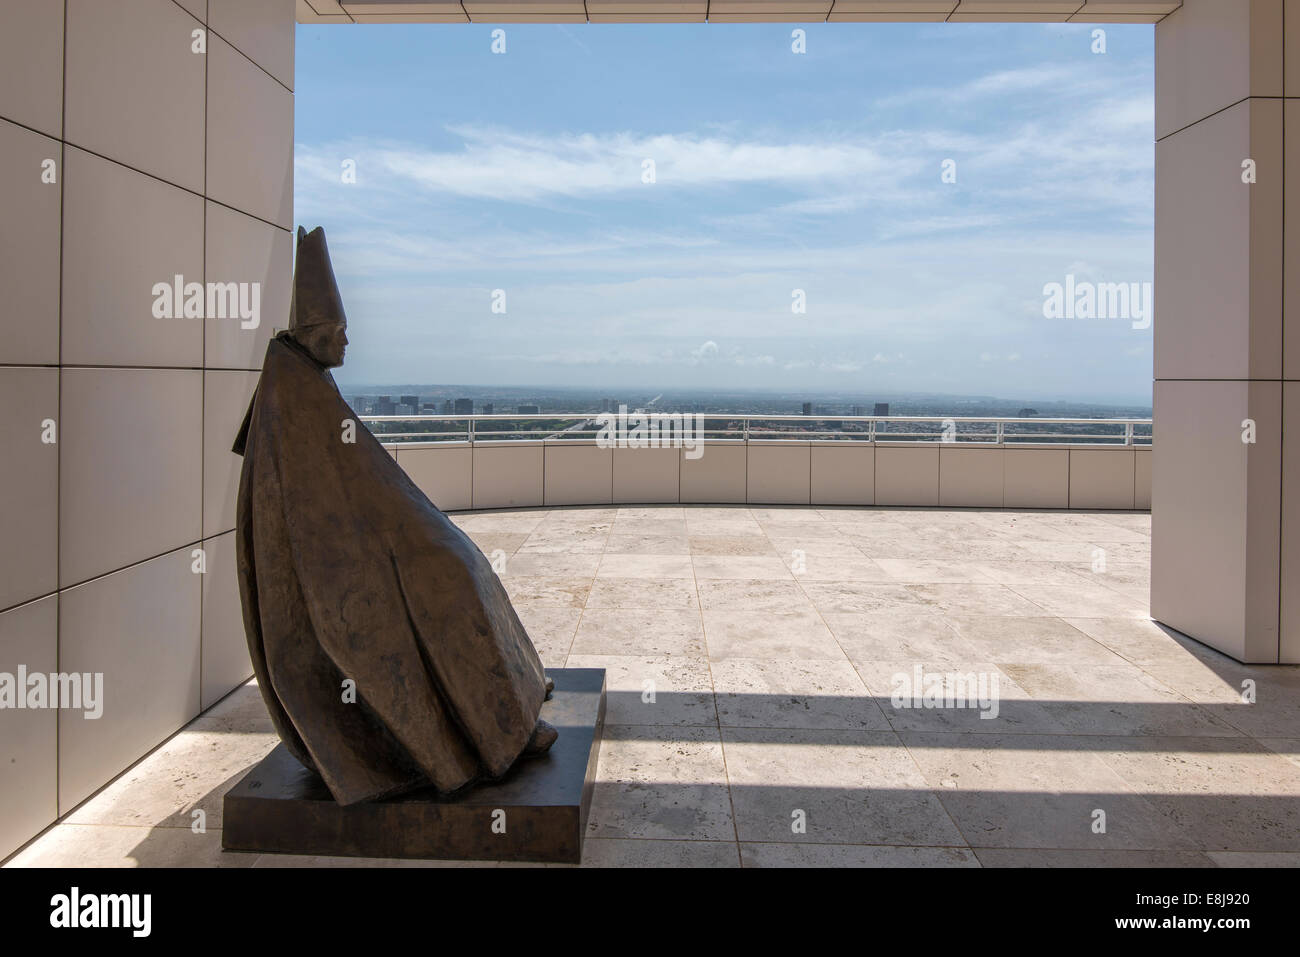 Statue on the panorama terrace of the Getty Center, Los Angeles : Seated Cardinal by Giacomo Manz - Stock Image